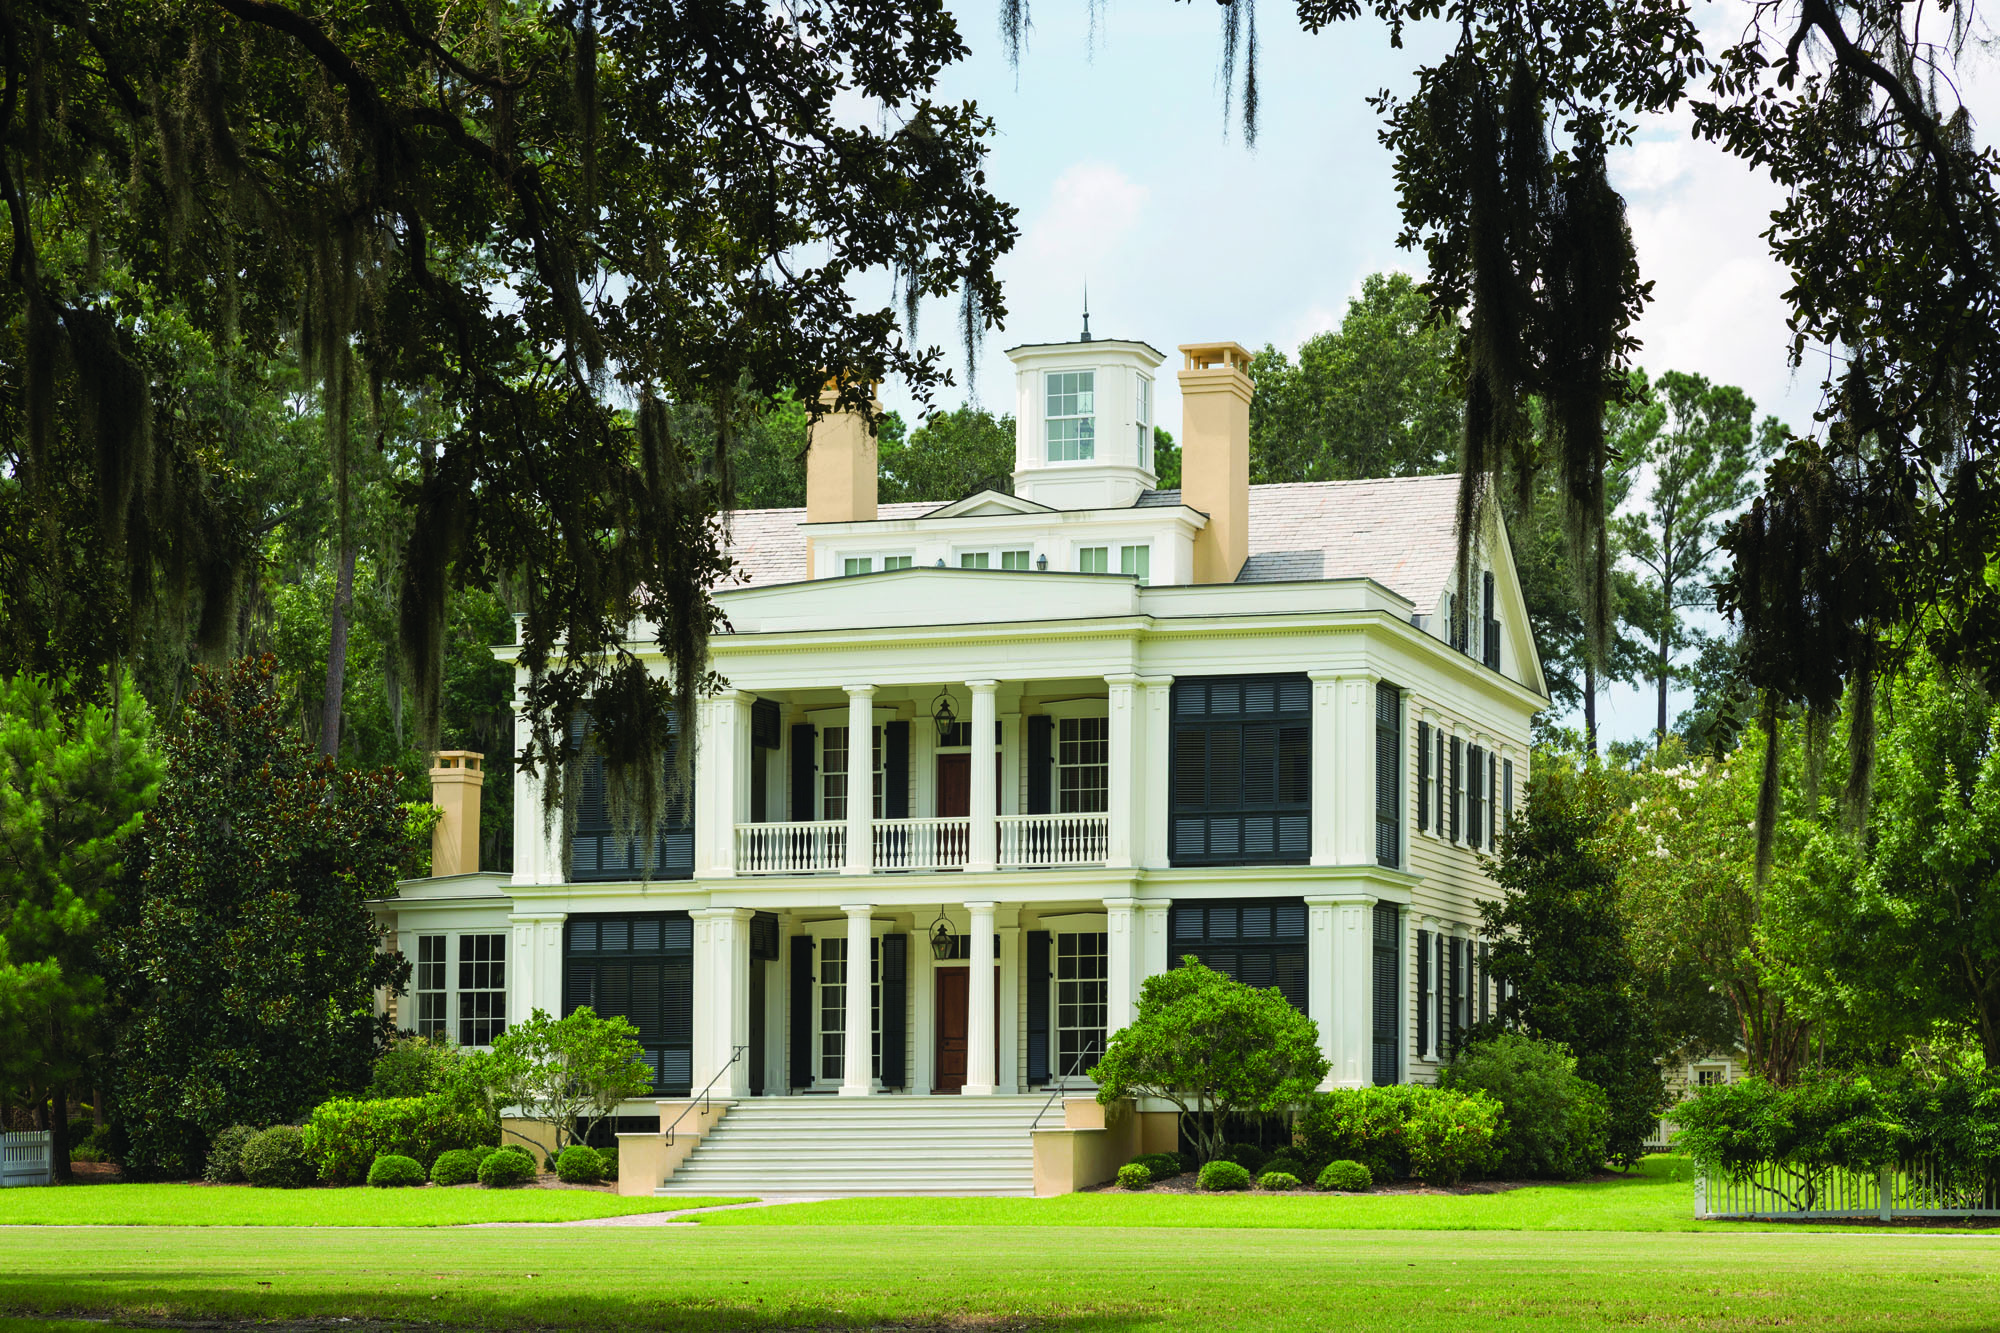 For the Ford Plantation, Historical Concepts drew inspiration from The Shadows, the first National Trust for Historic Preservation site on the Gulf Coast.